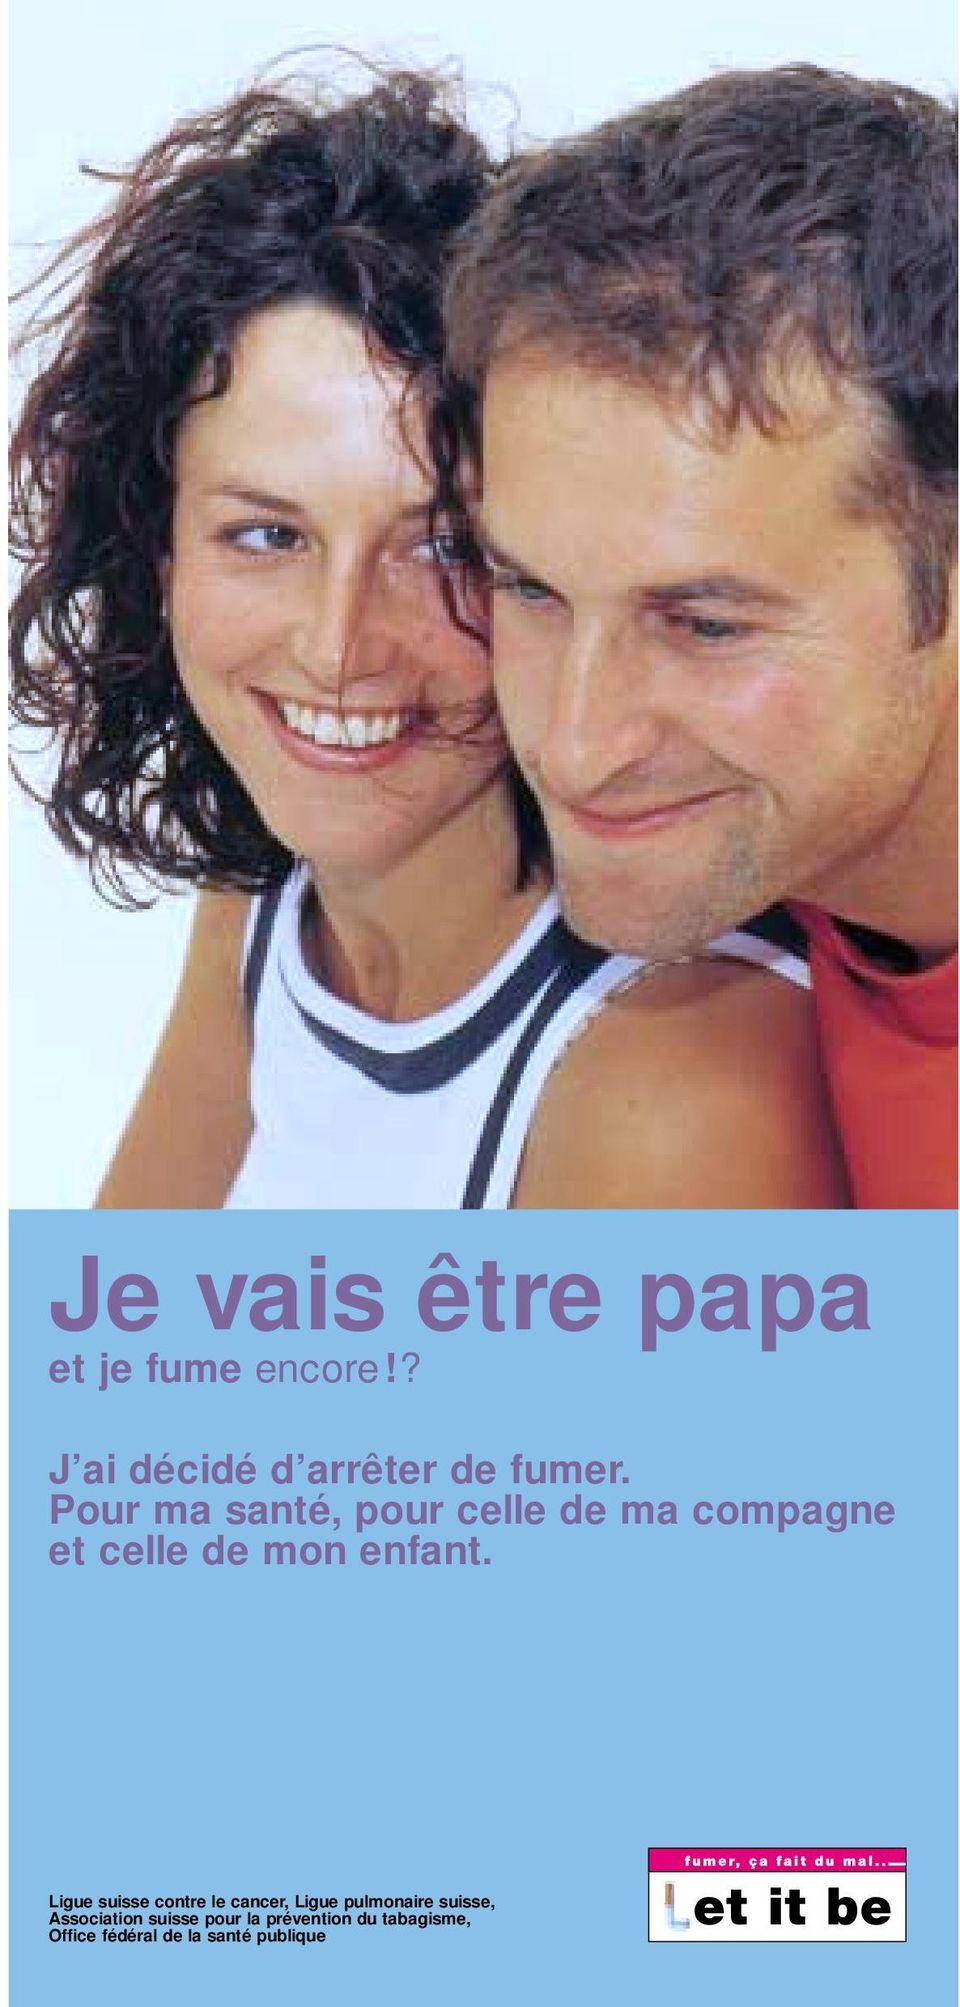 Ligue suisse contre le cancer, Ligue pulmonaire suisse, Association